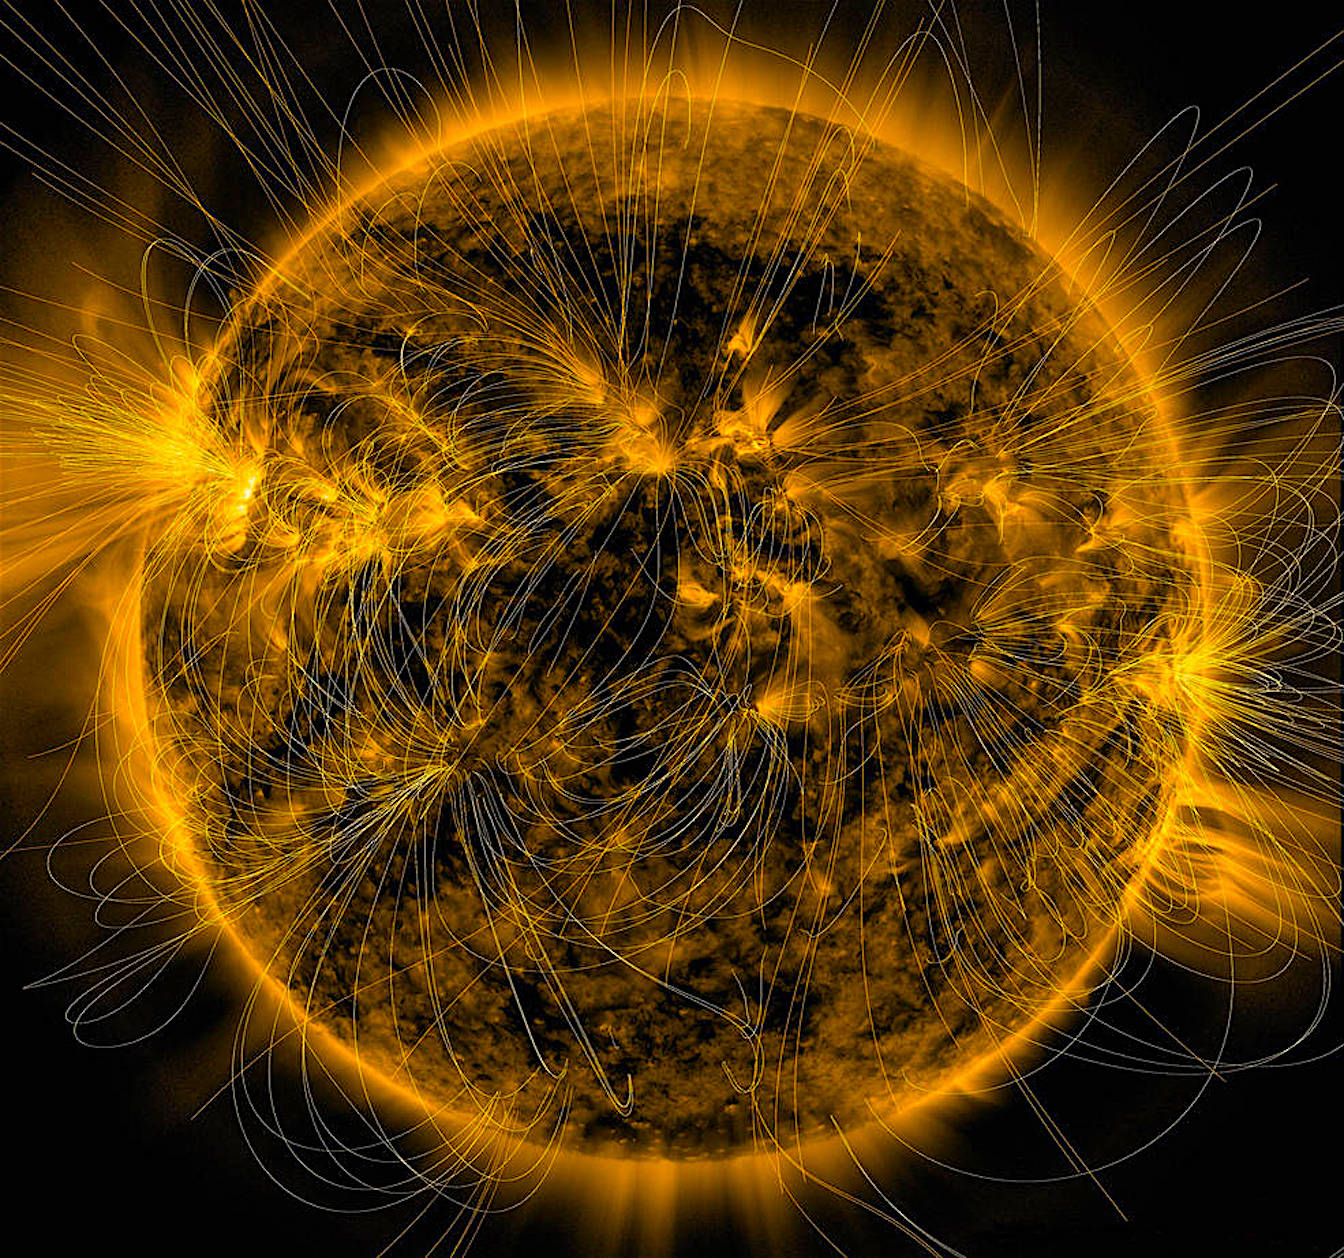 A model of the magnetic field in the Sun's atmosphere superimposed on a false-color, extreme ultraviolet (171 angstroms) image. Credits: NASA/SDO/AIA/LMSAL